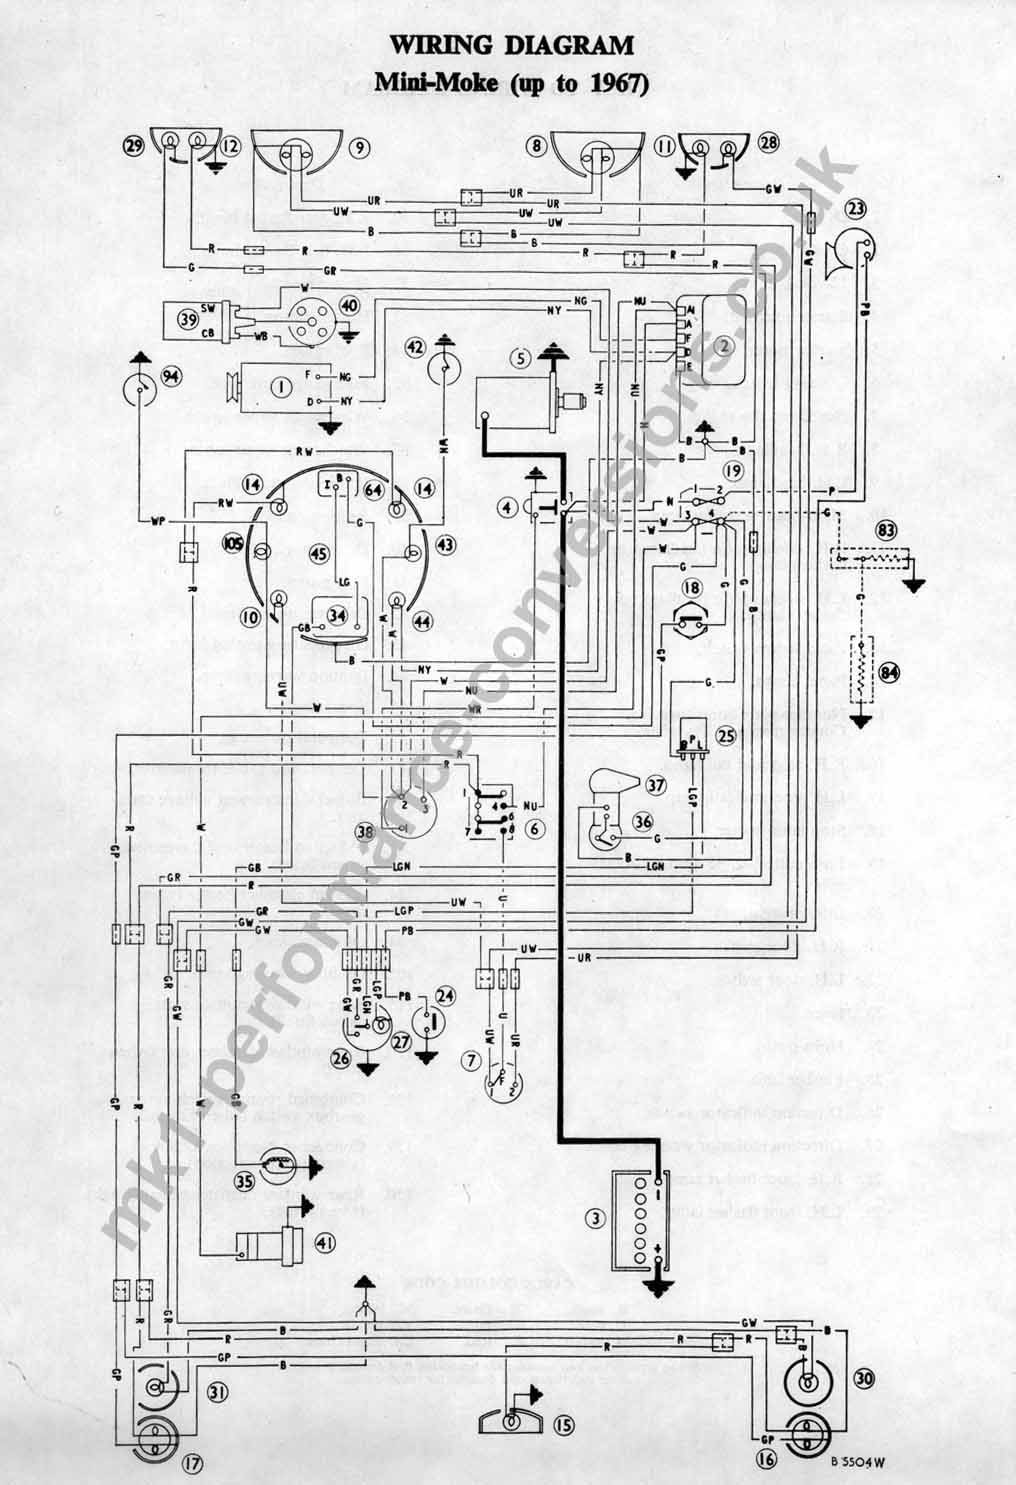 1967 Dodge Charger Wiring Diagrams Library Buick Lesabre Classic Mini Schematic Diagram